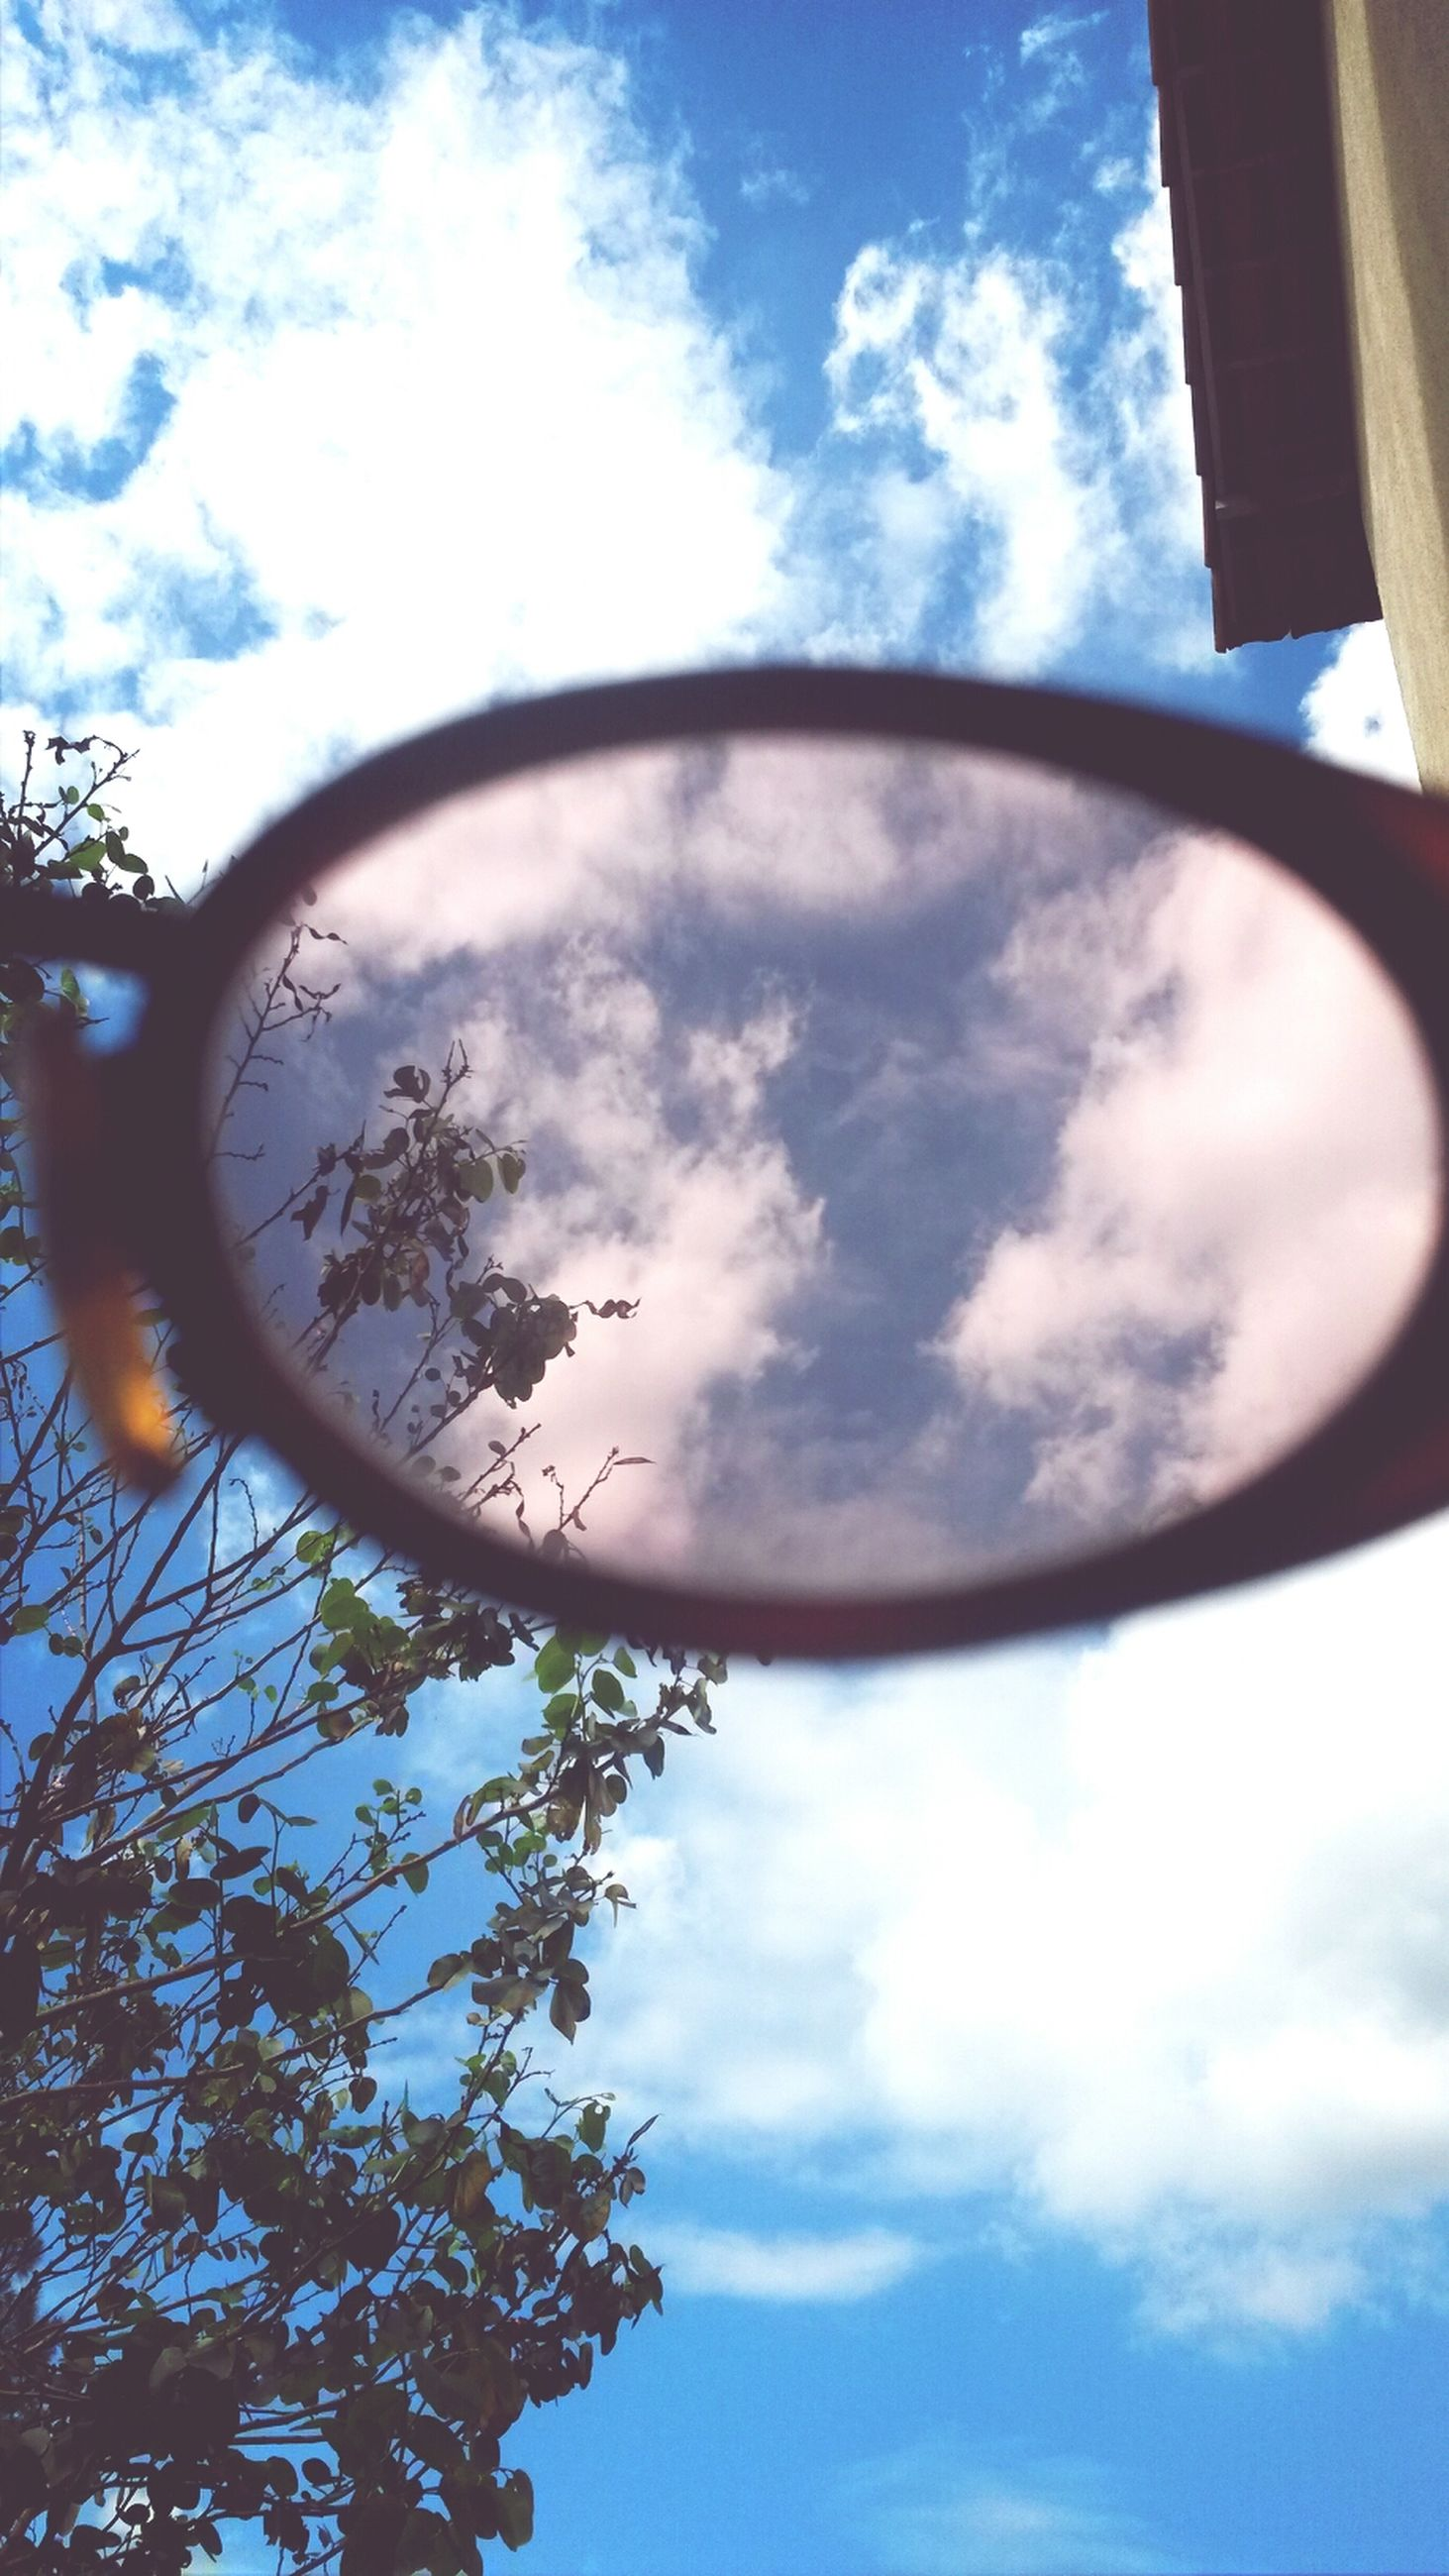 low angle view, sky, cloud - sky, built structure, architecture, cloud, cloudy, tree, building exterior, glass - material, day, circle, directly below, no people, reflection, outdoors, blue, street light, nature, sunlight